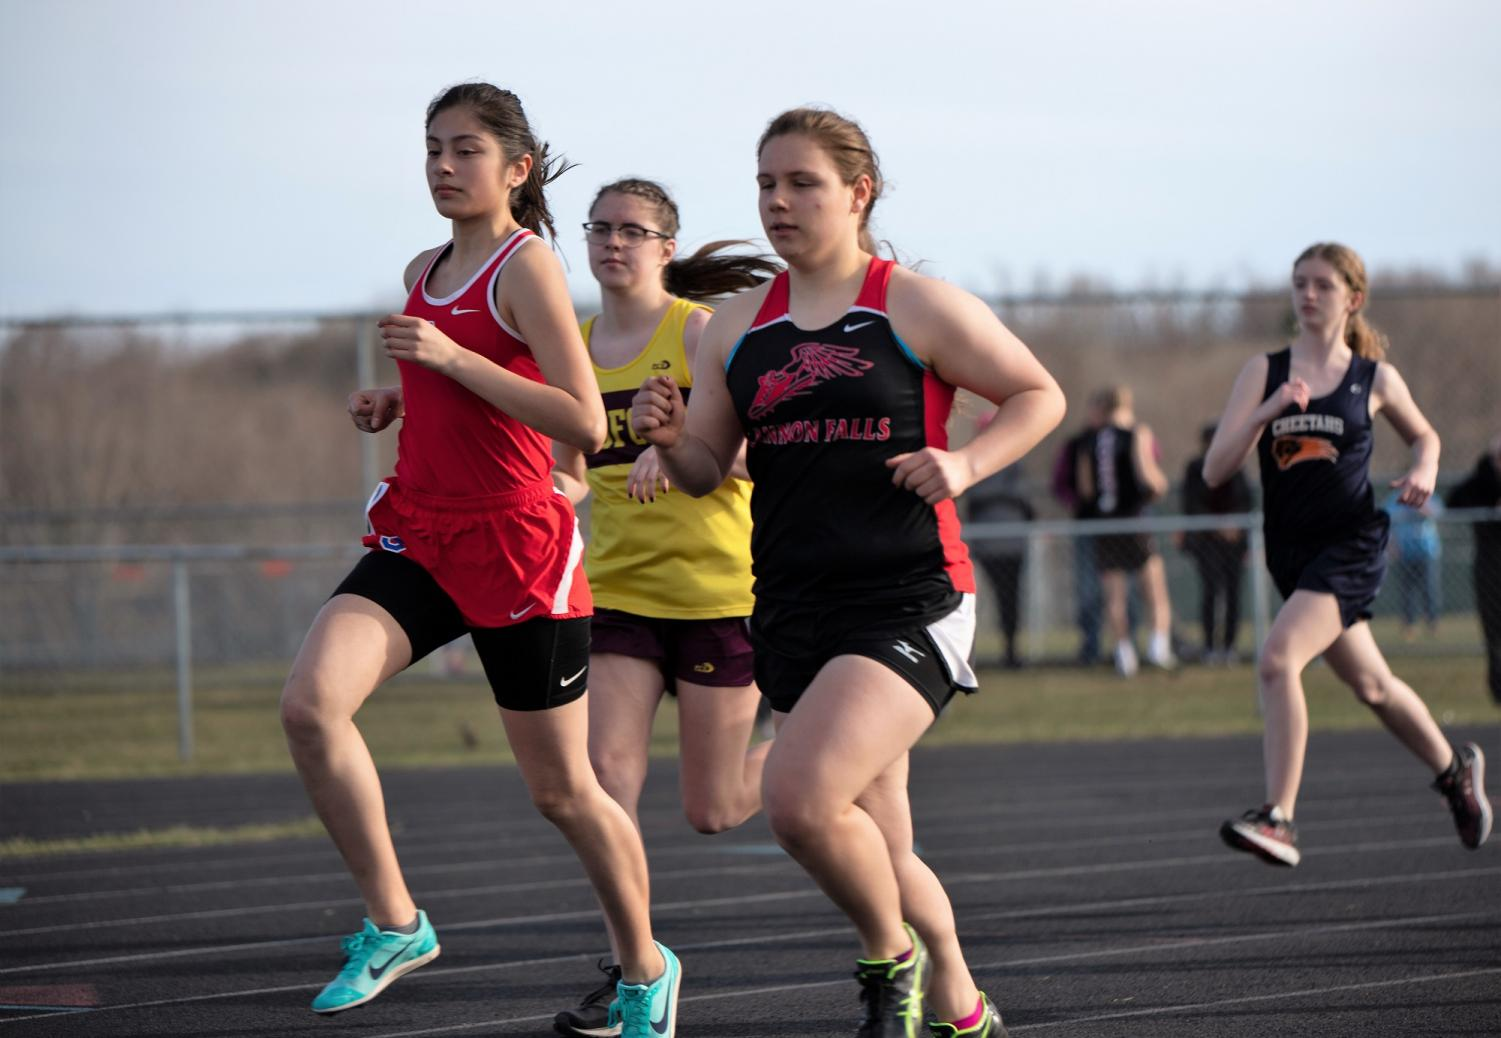 Captain Sophie Epps is racing towards the finish line